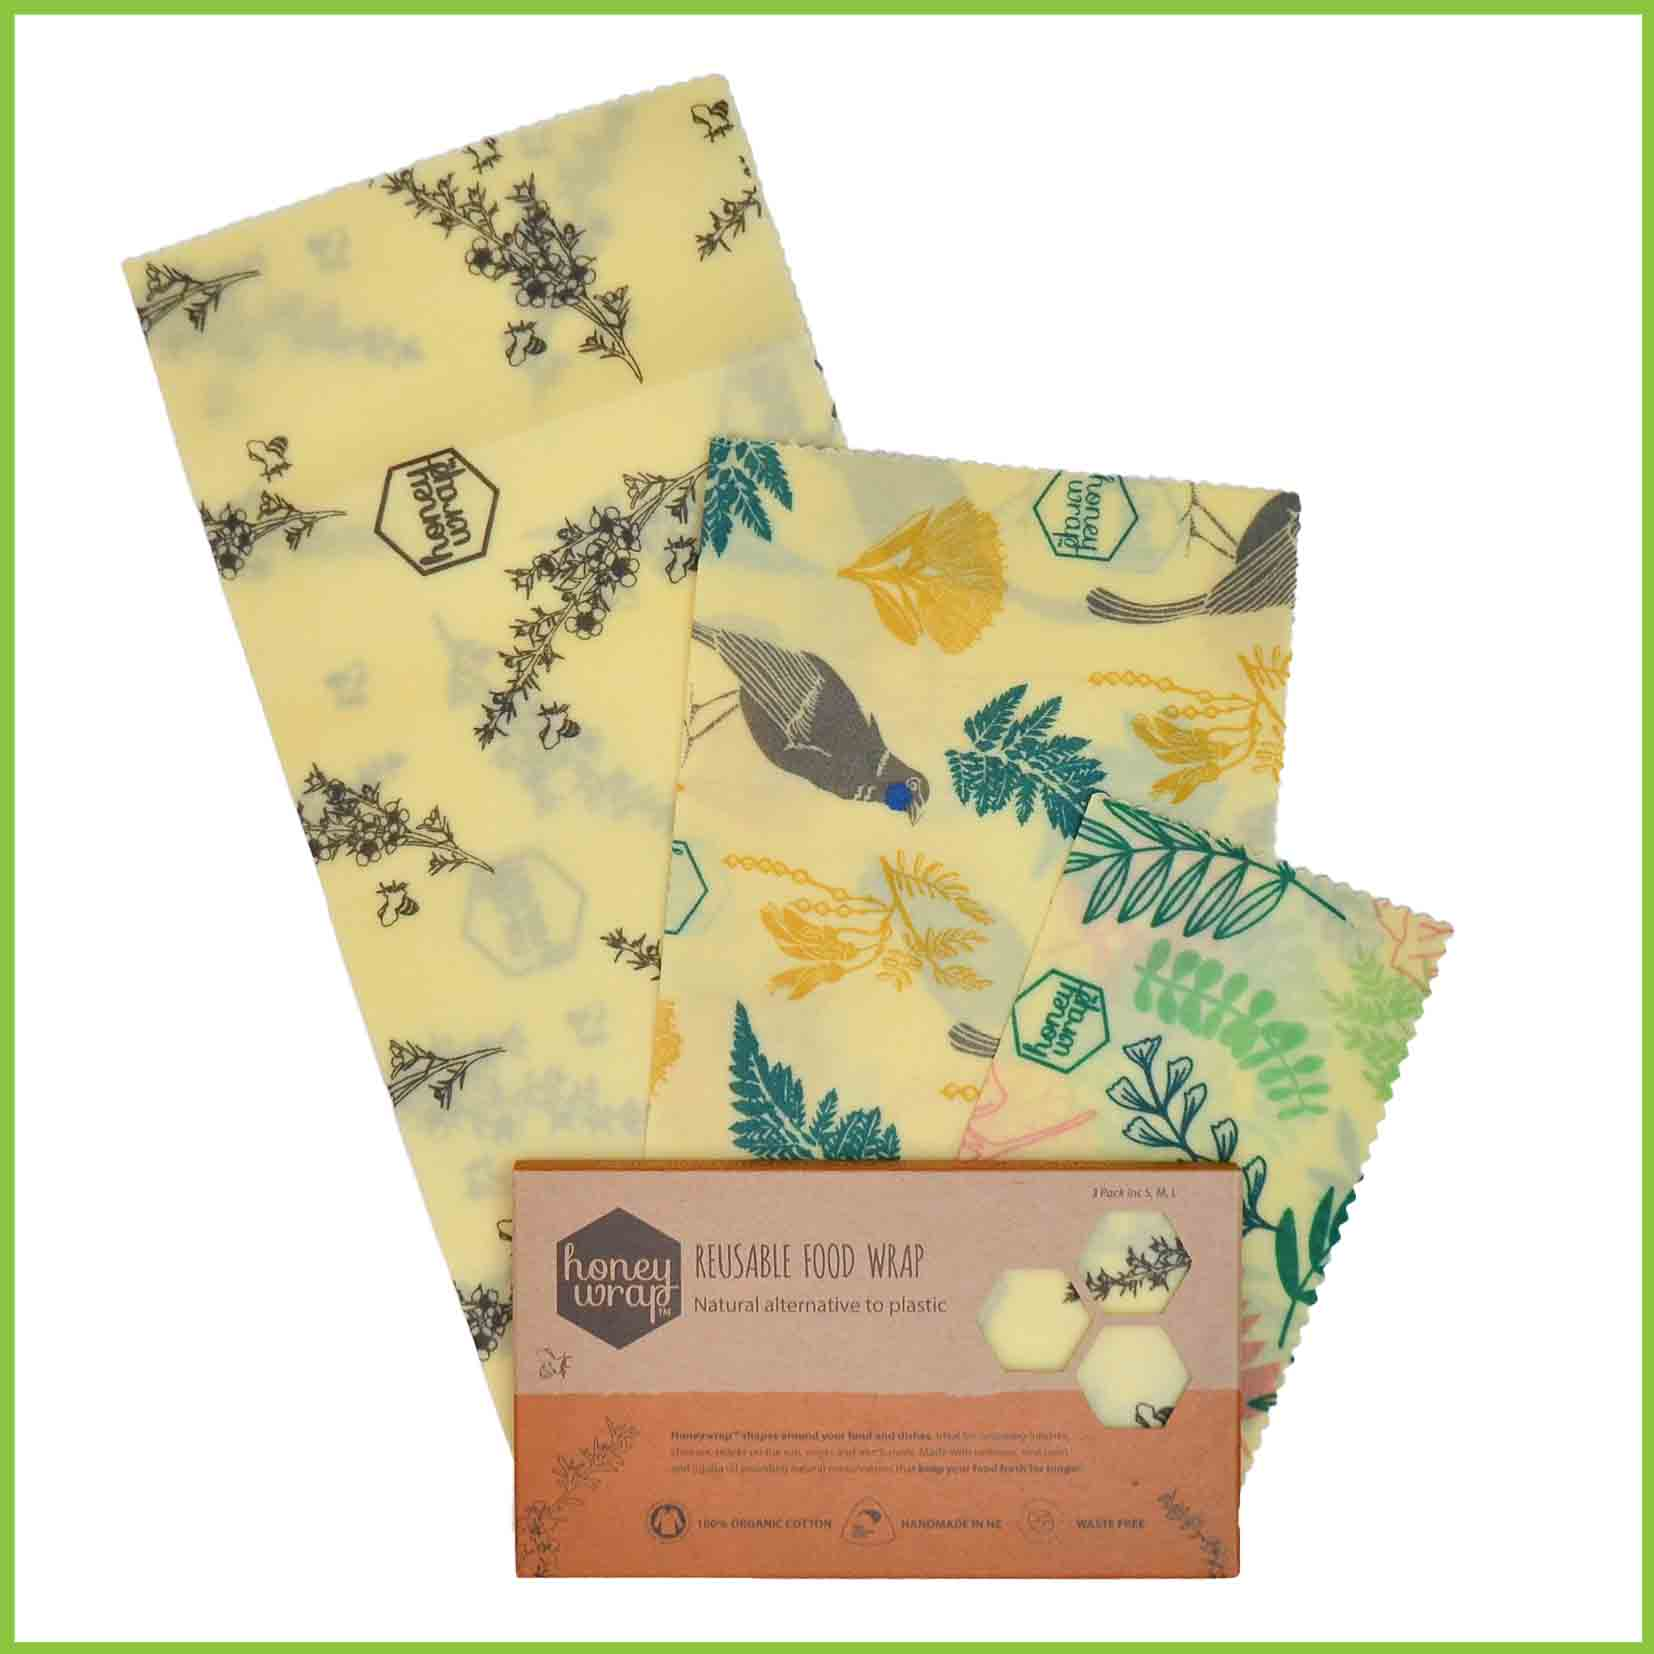 A 3 pack of Honeywrap beeswax wraps with a Nature theme.